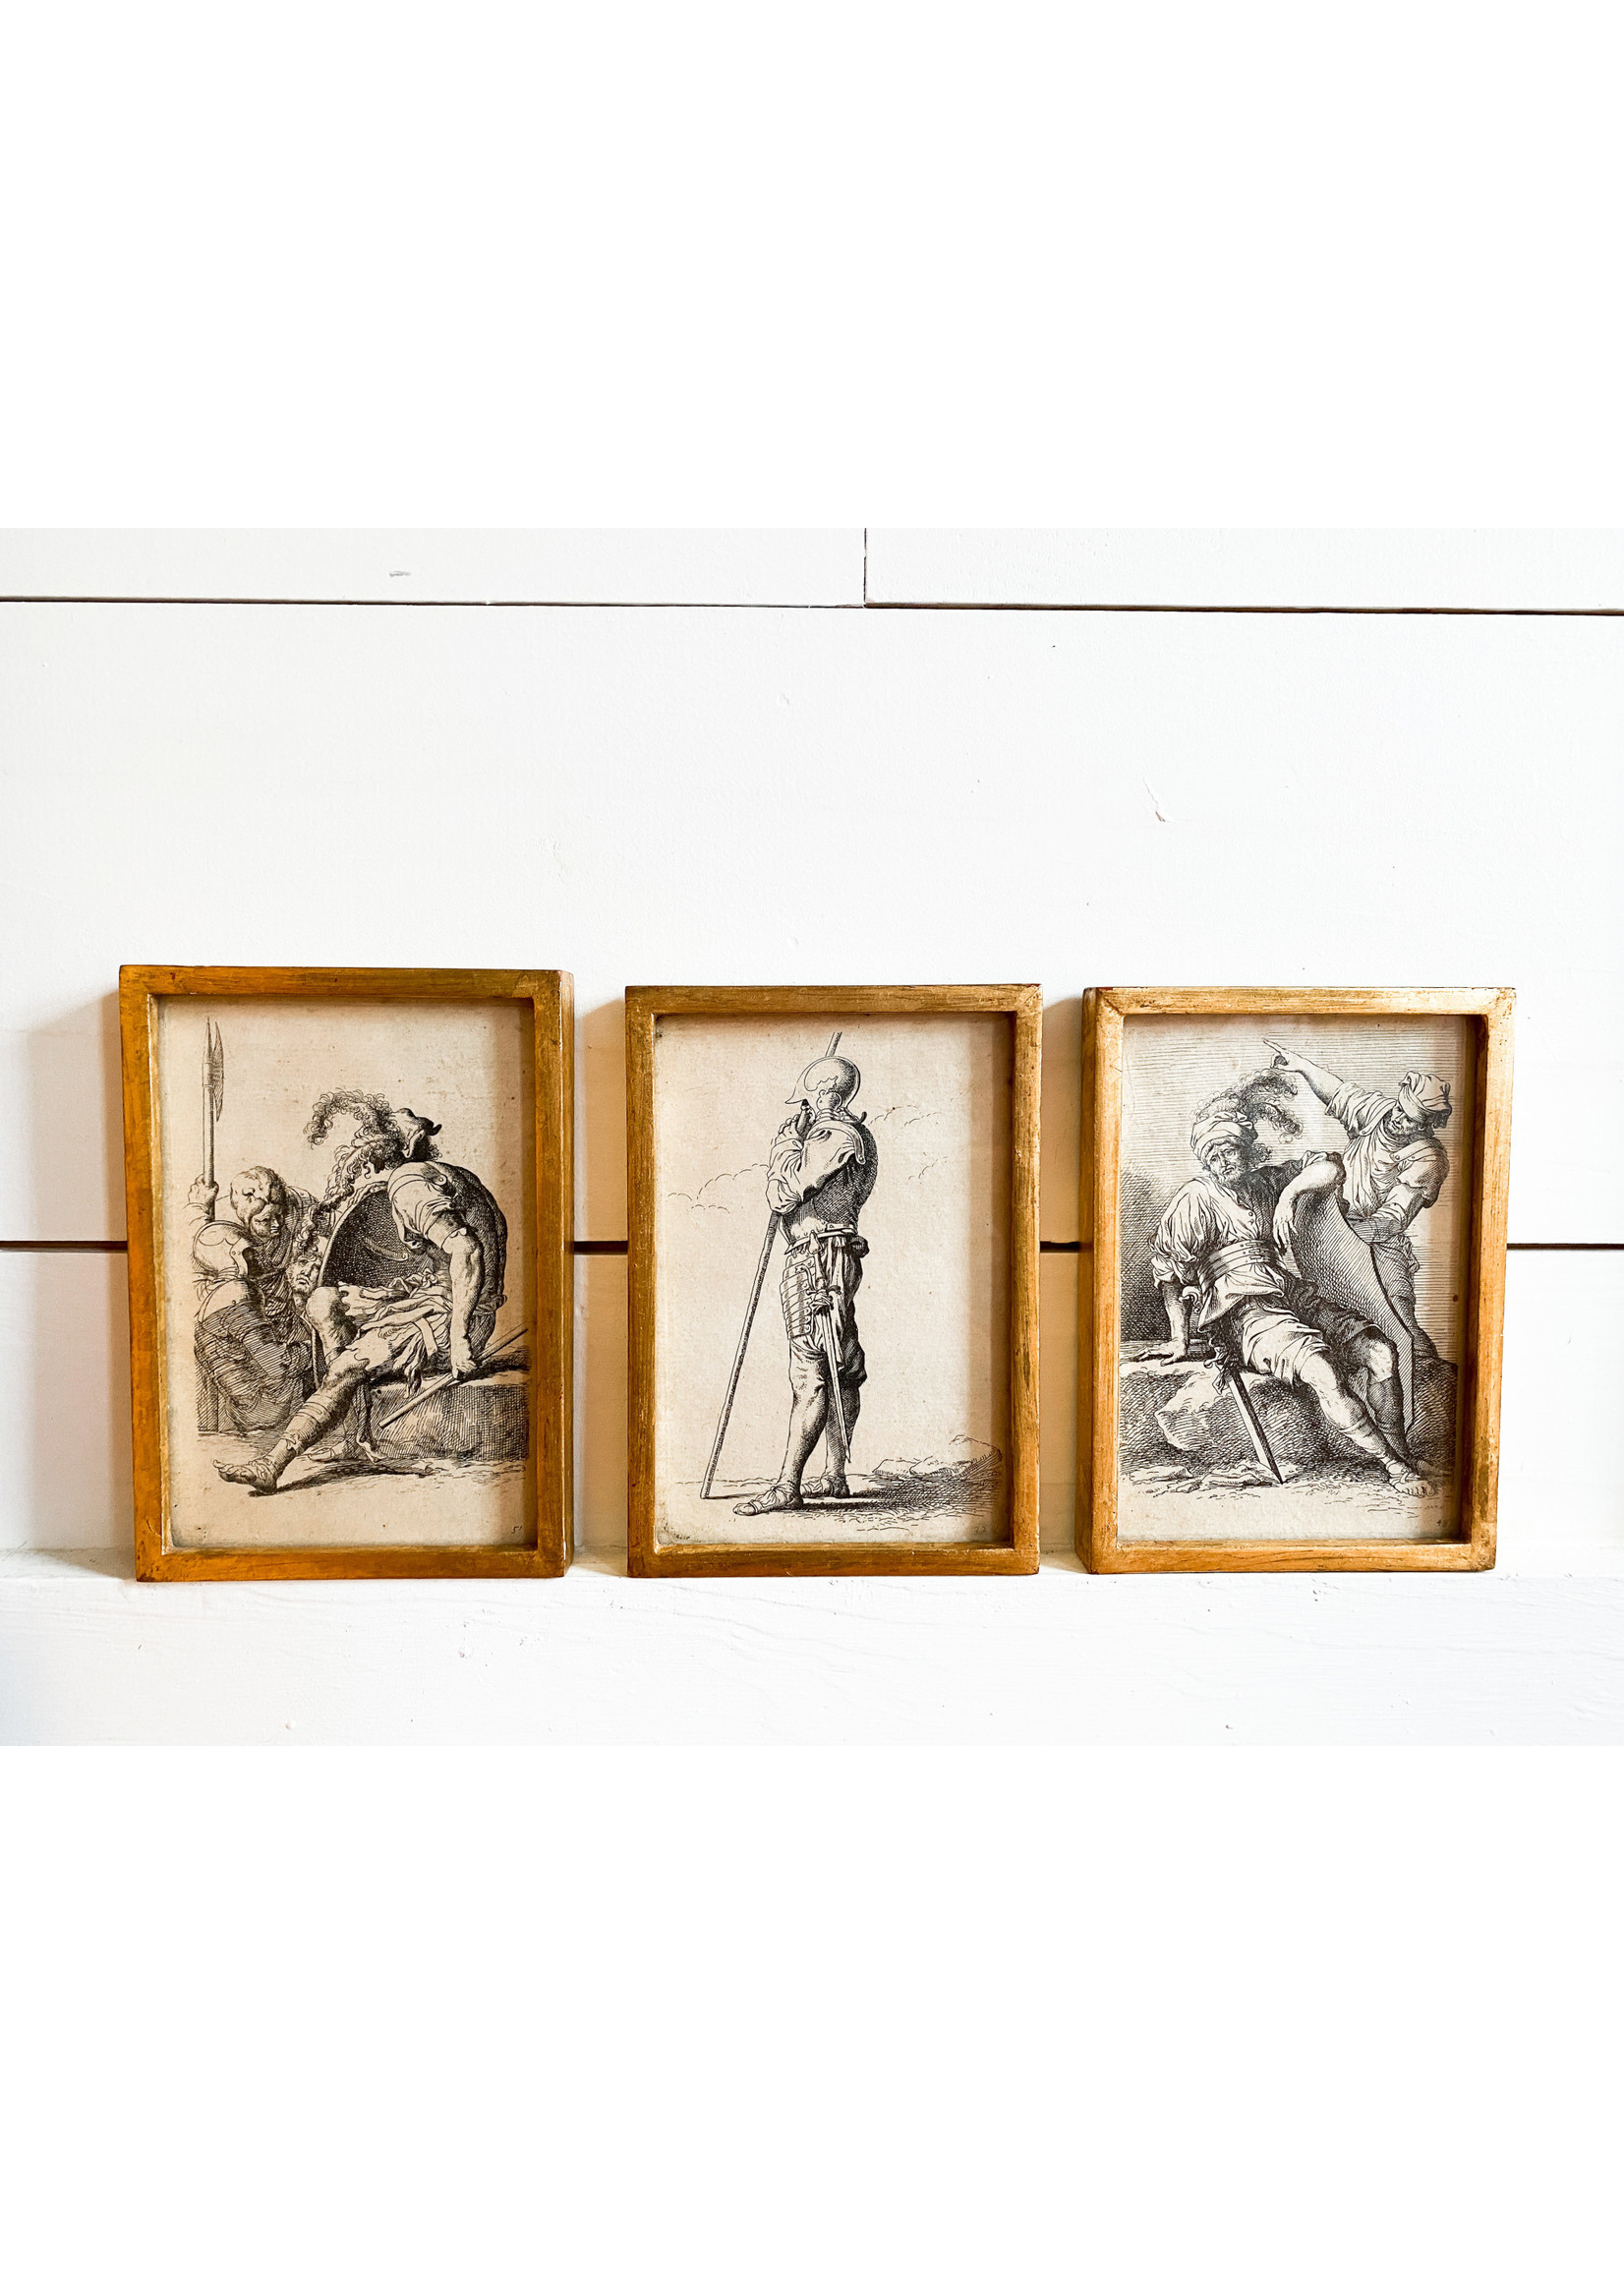 Antique Rembrandt Etchings Early 18th c.